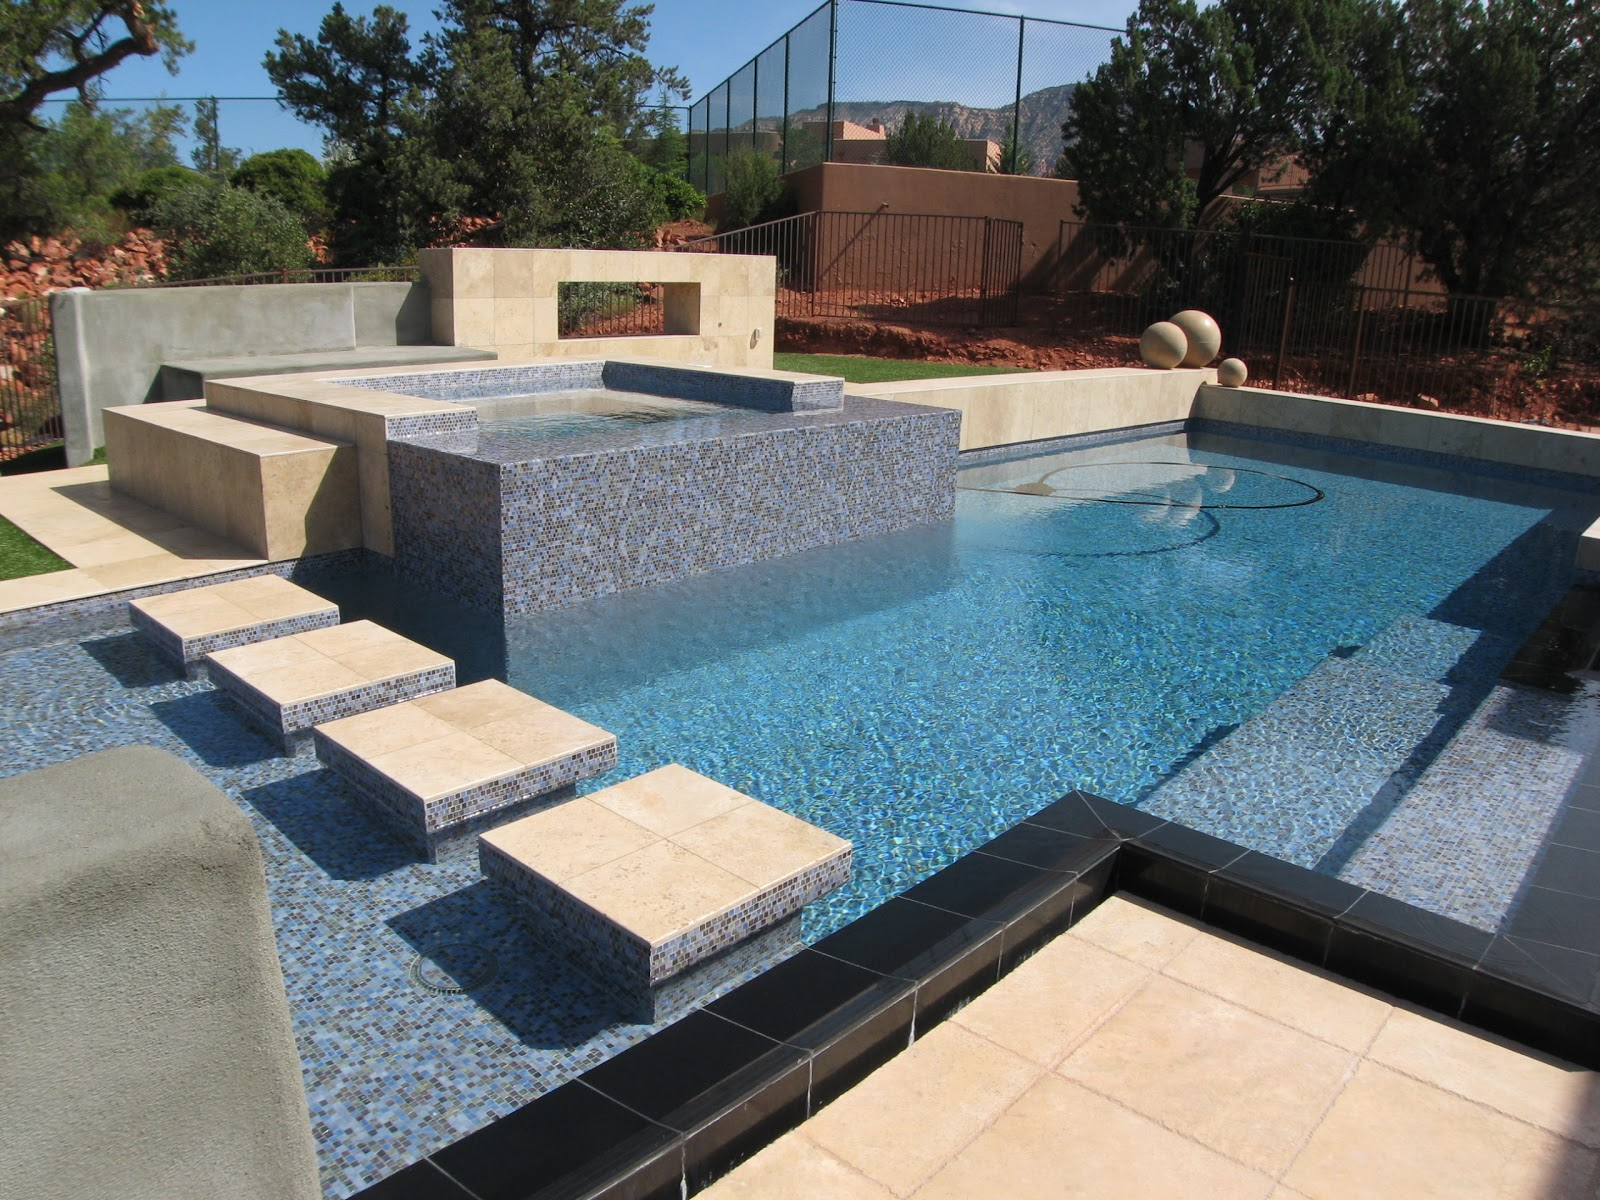 Laticrete Conversations Incredible Glass Mosaic Tile Travertine Pool